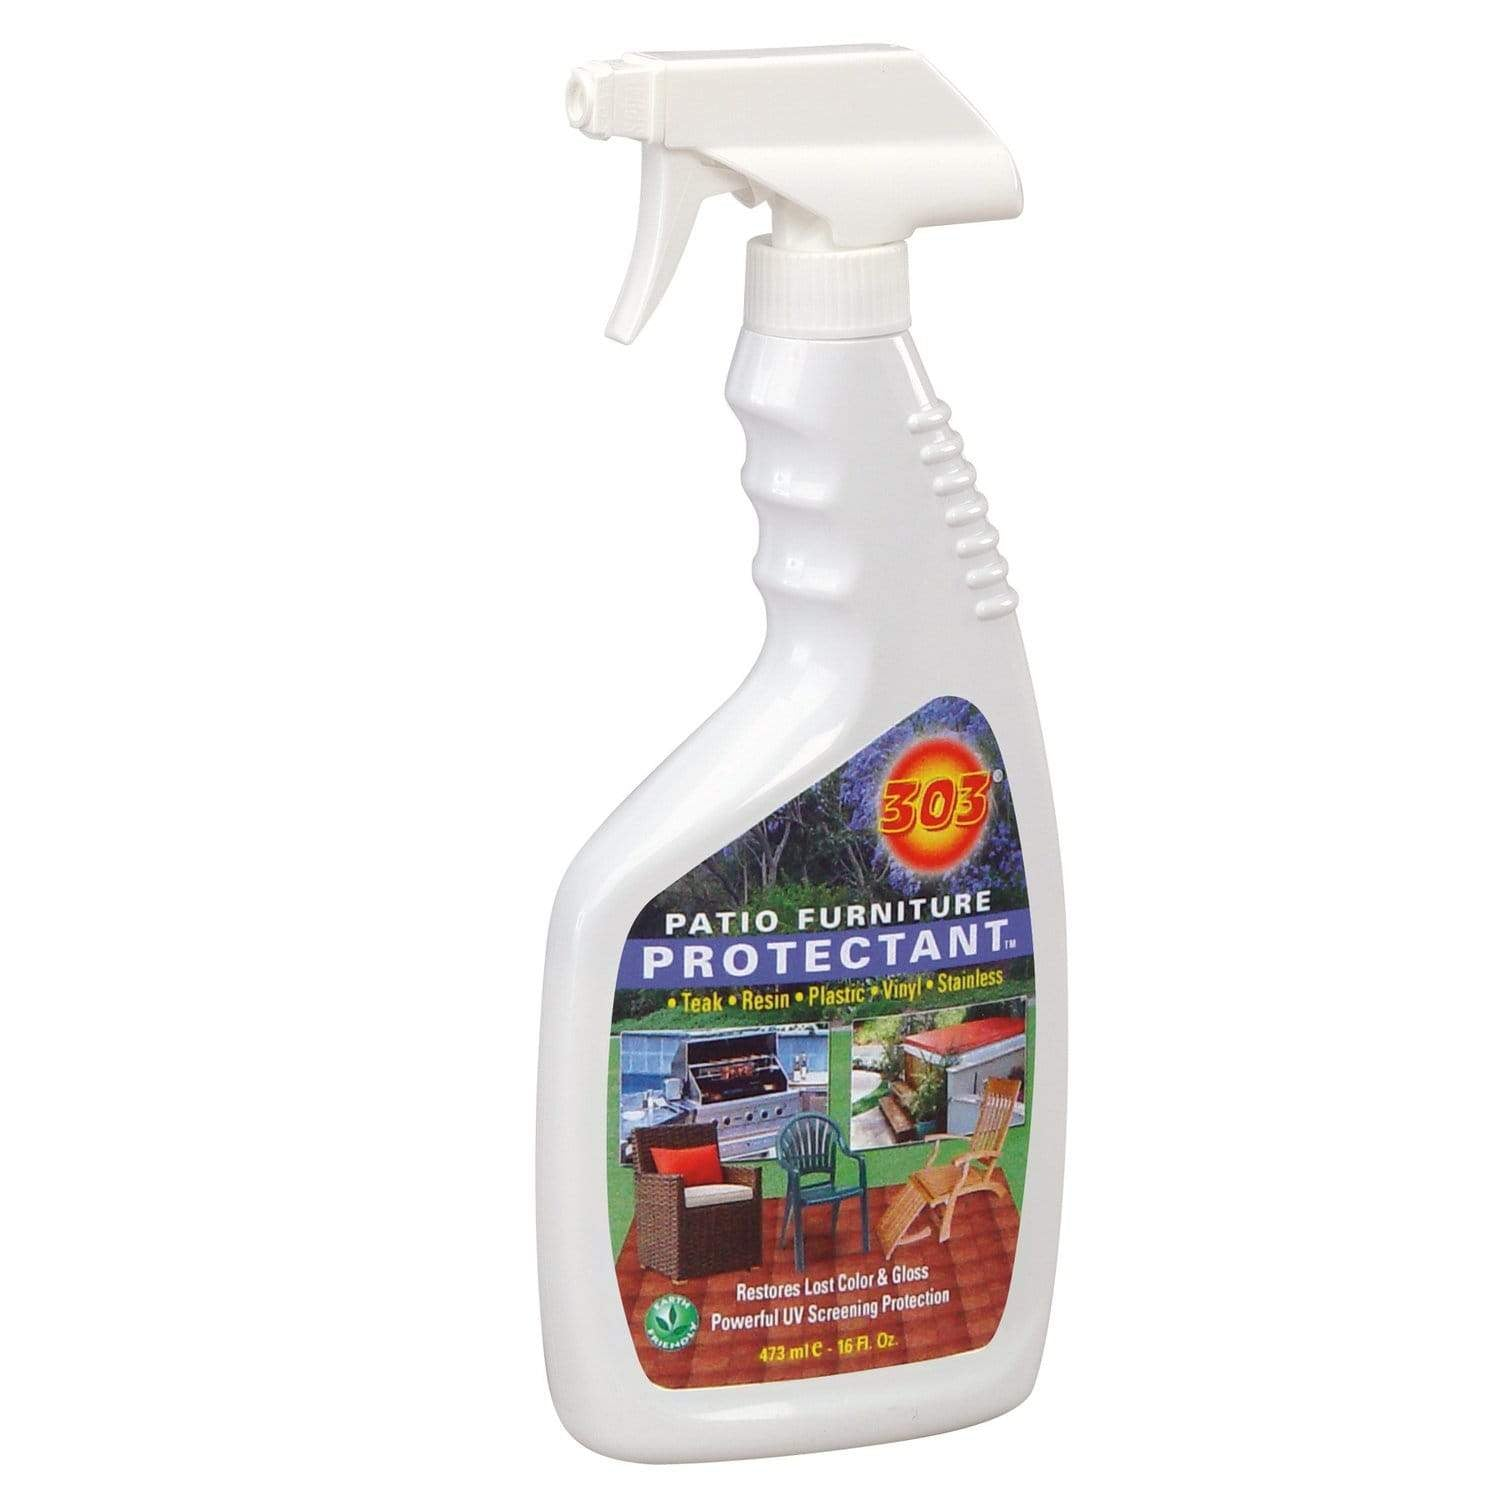 303 Cleaning/Care Products Furniture Care Patio Furniture Protectant 16oz